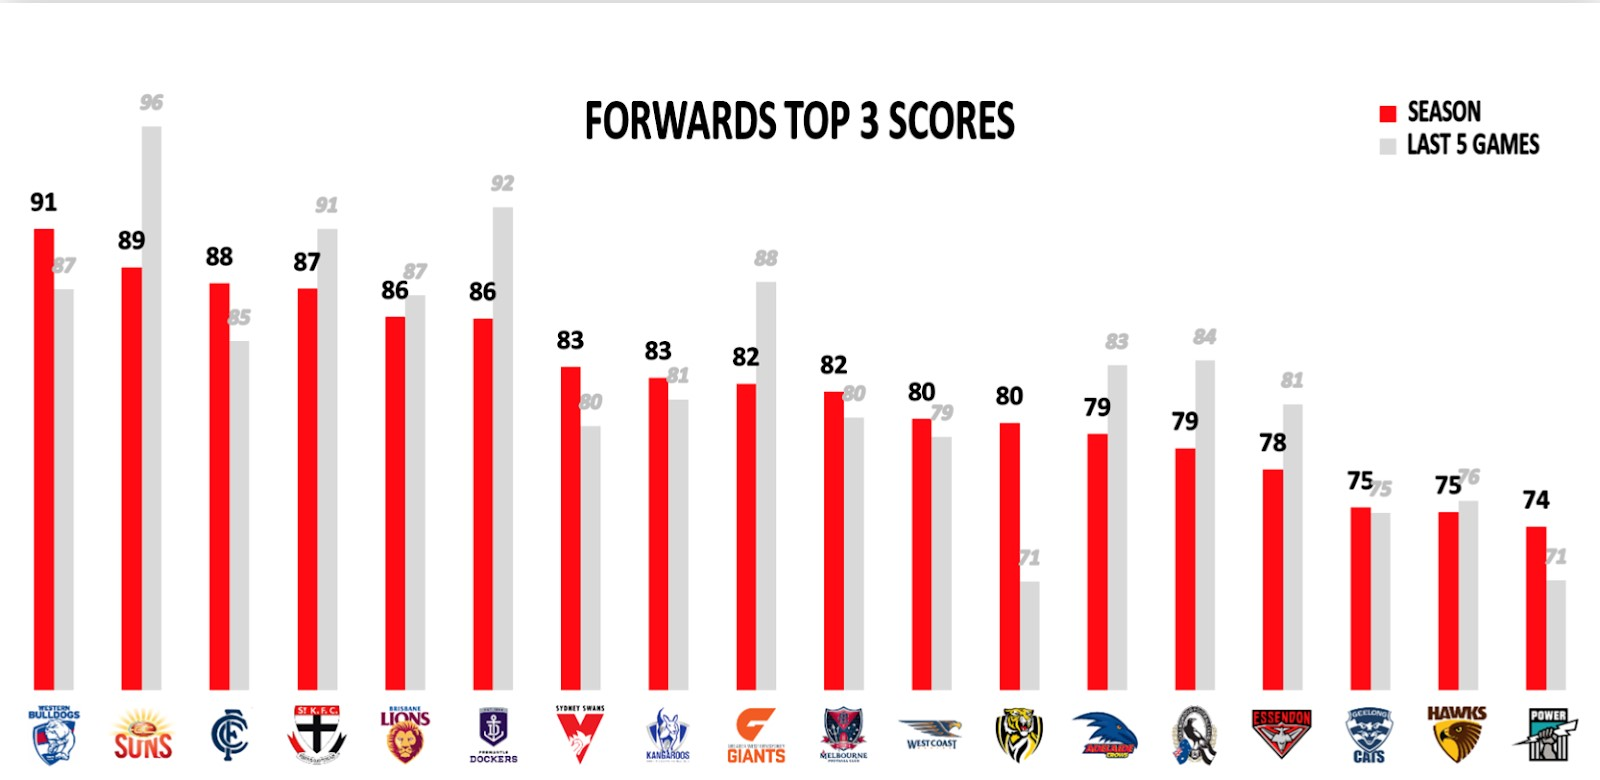 Points Against - Forwards Top 3